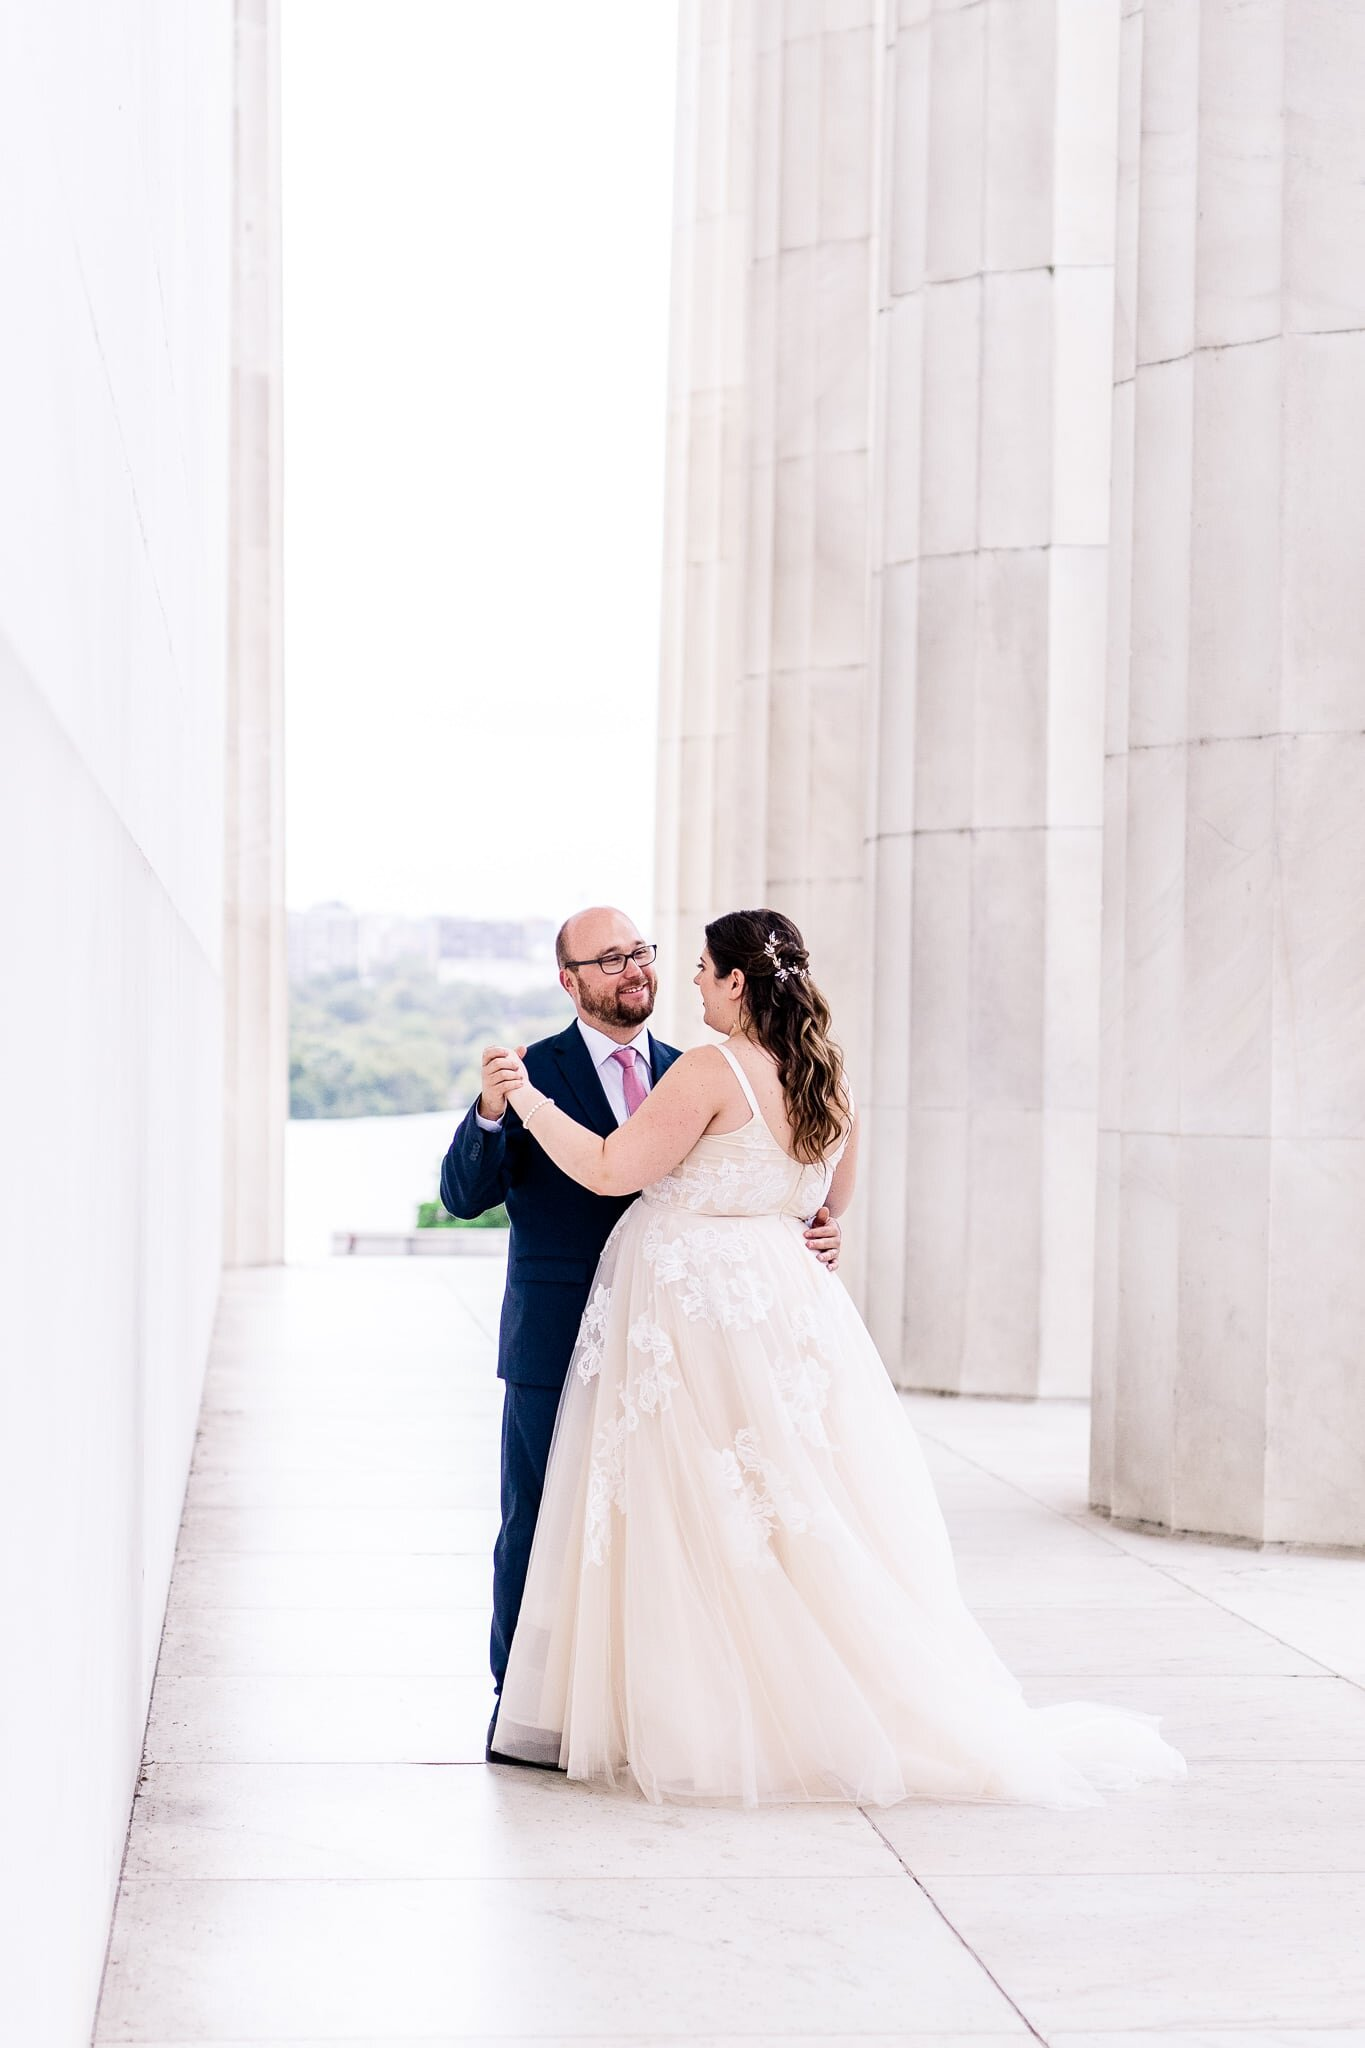 A bride and groom dance together on their wedding day at the Lincoln Memorial in Washington, DC